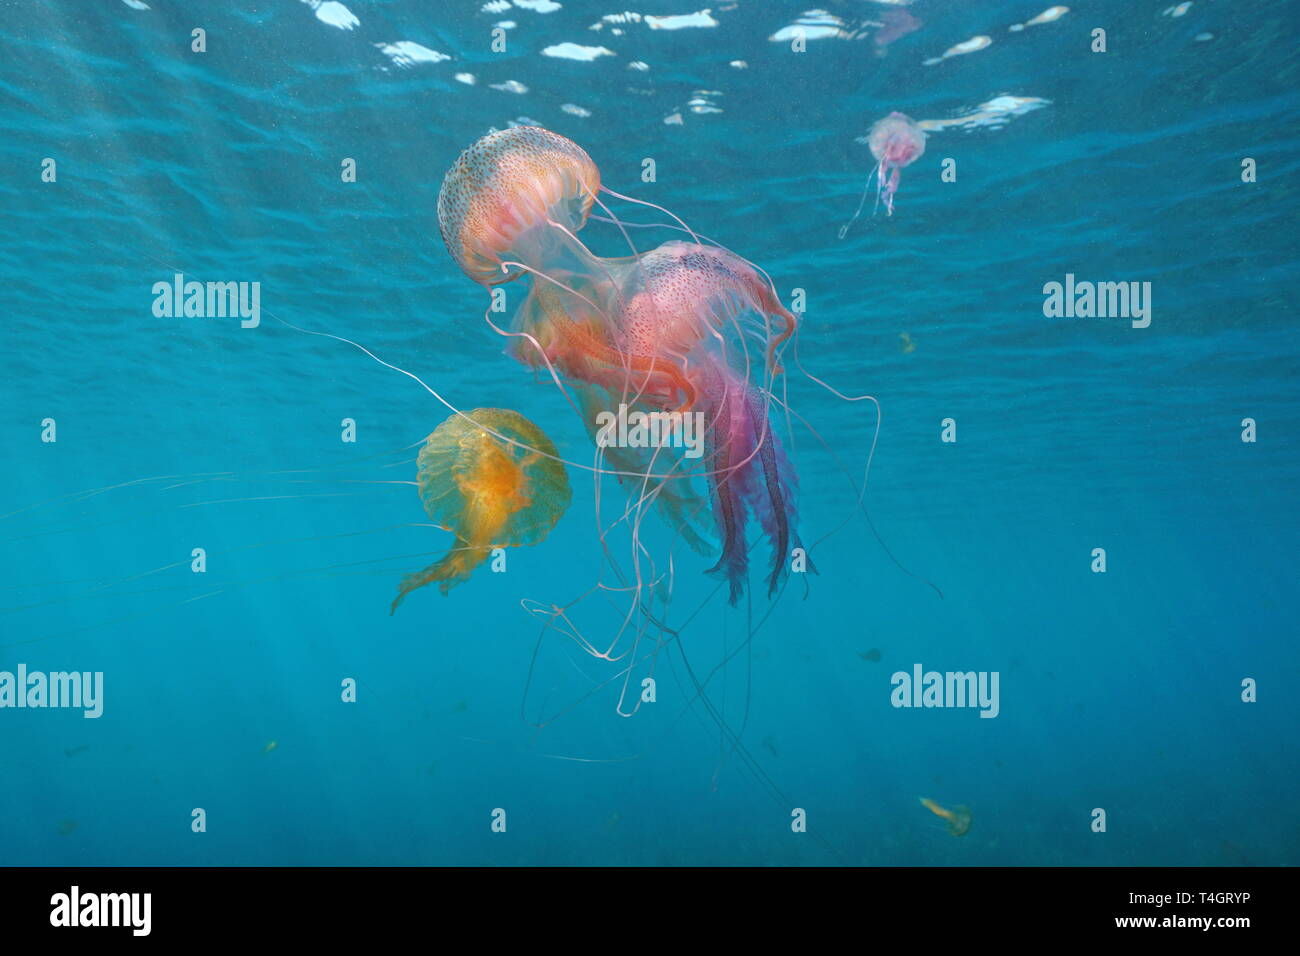 Several jellyfish underwater in Mediterranean sea, mauve stinger Pelagia noctiluca, Spain - Stock Image